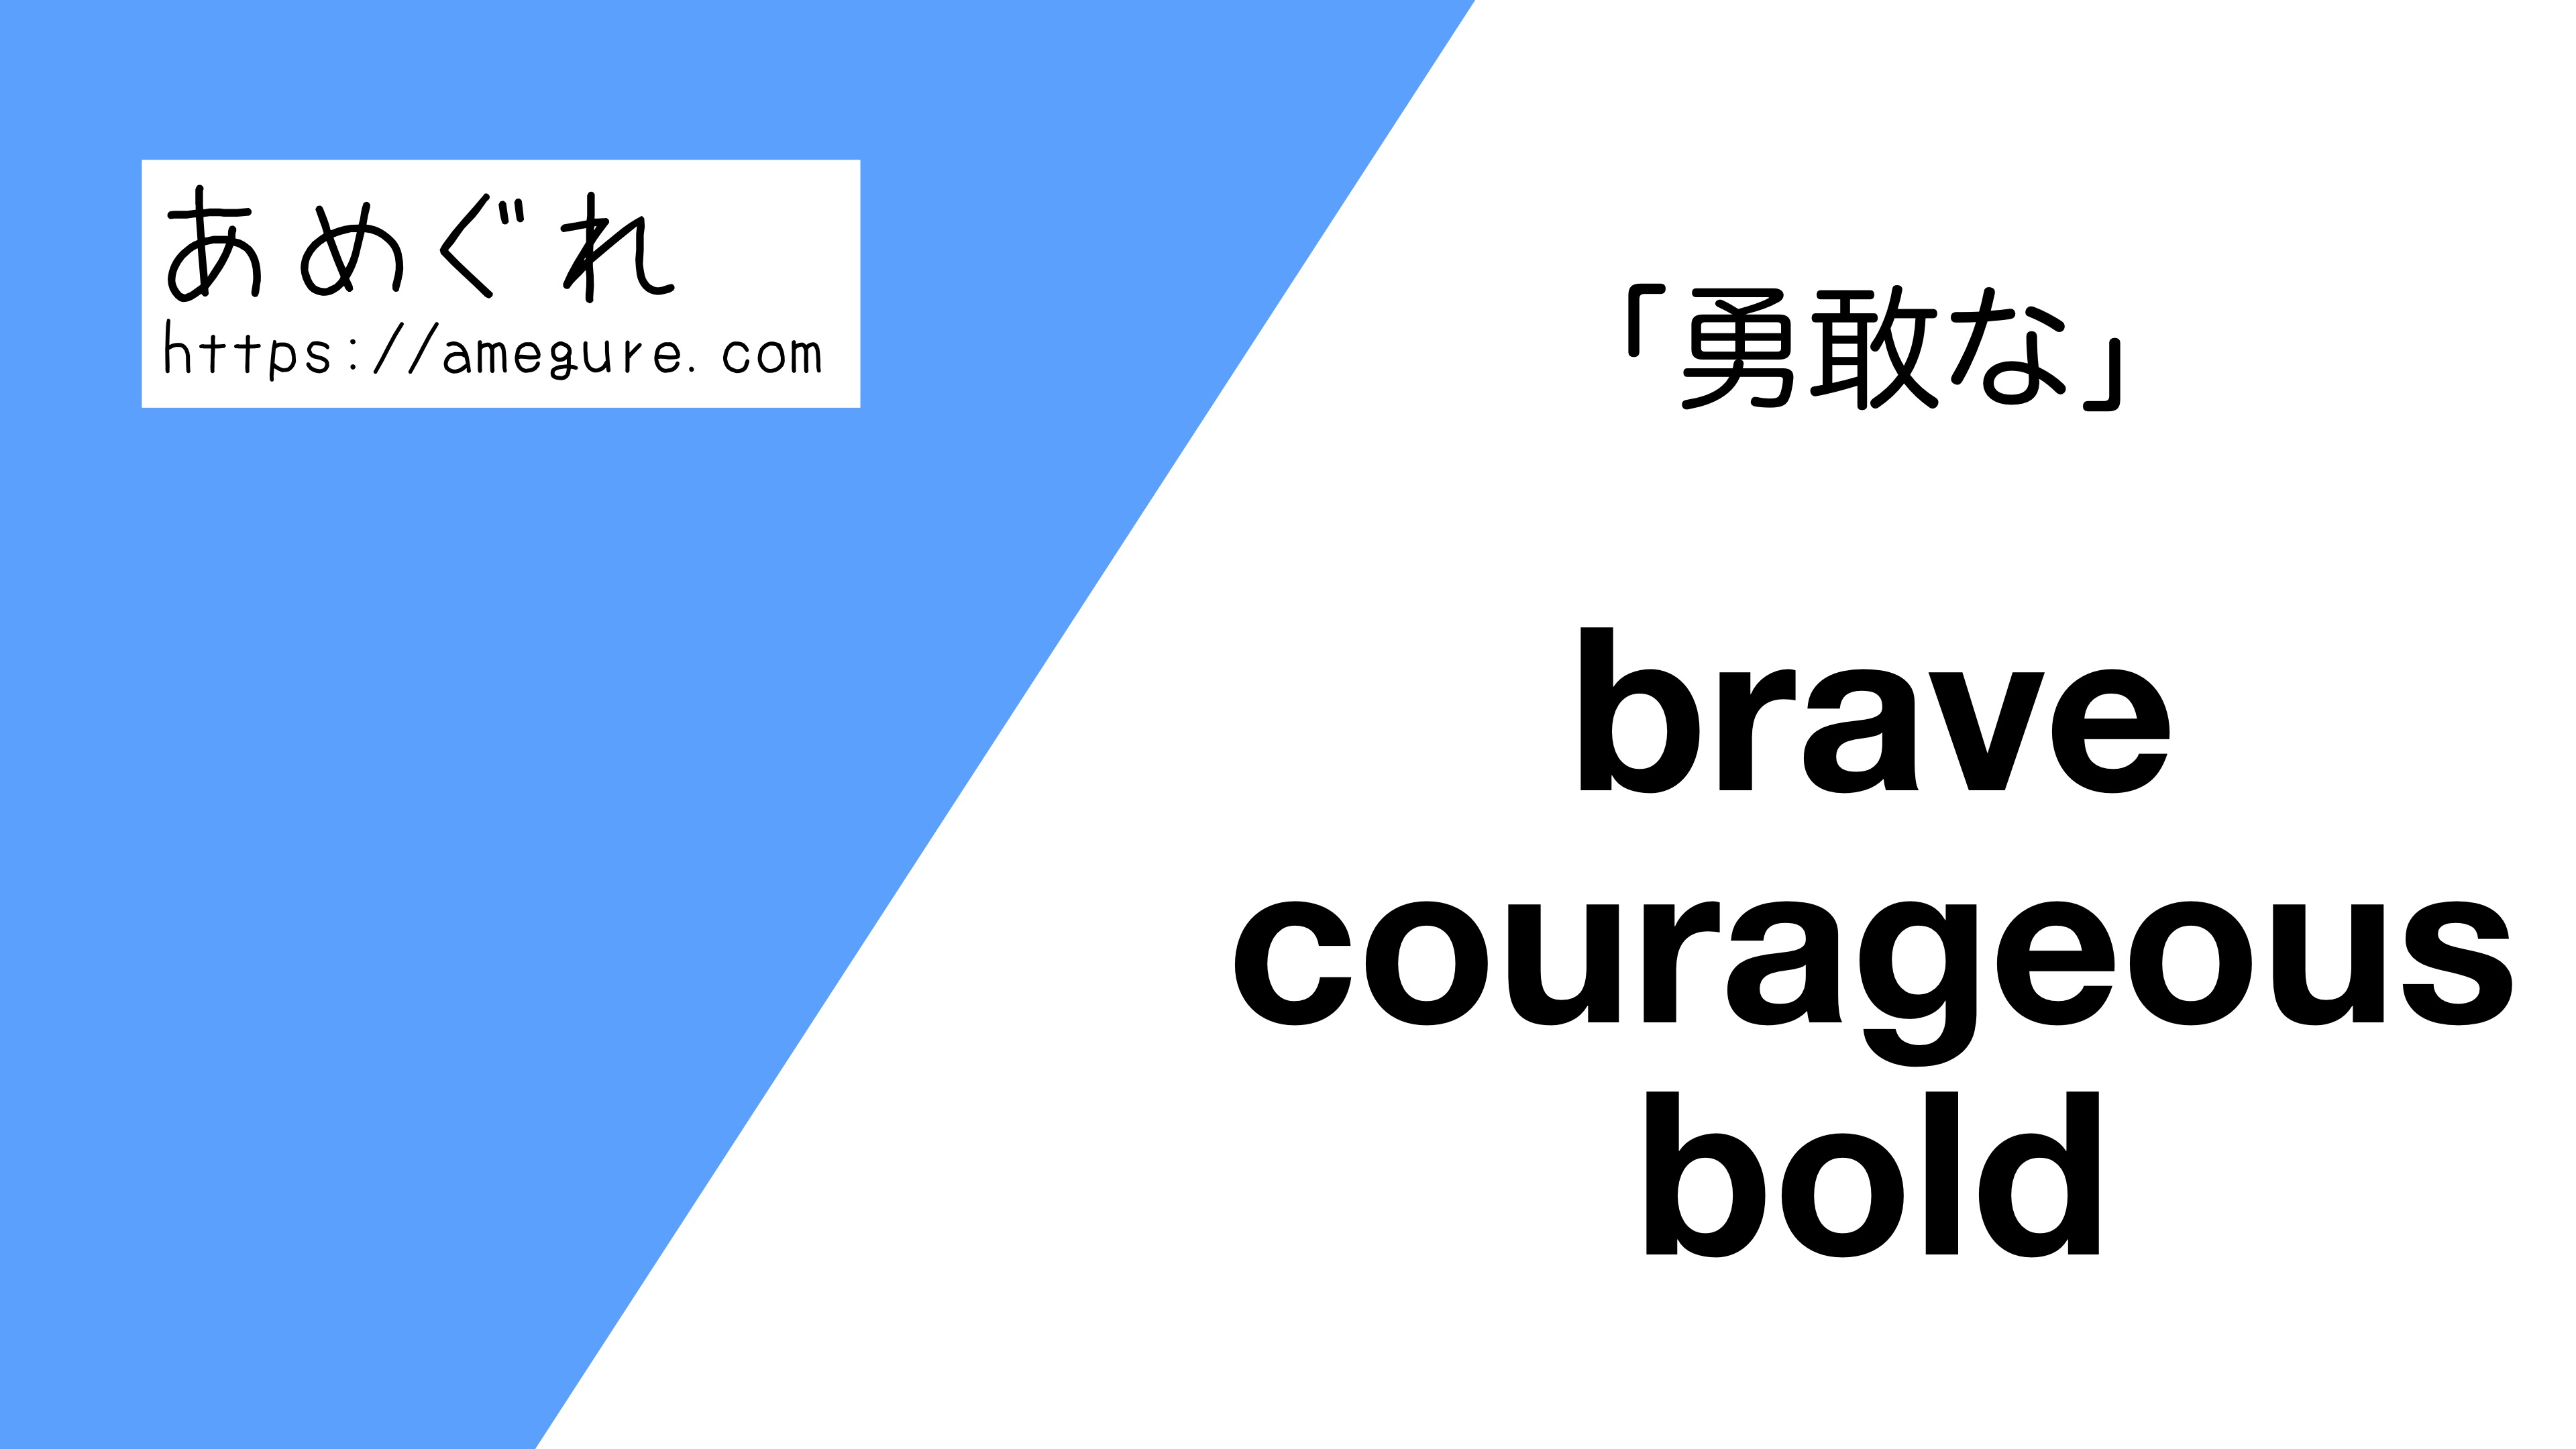 brave-courageous-bold違い